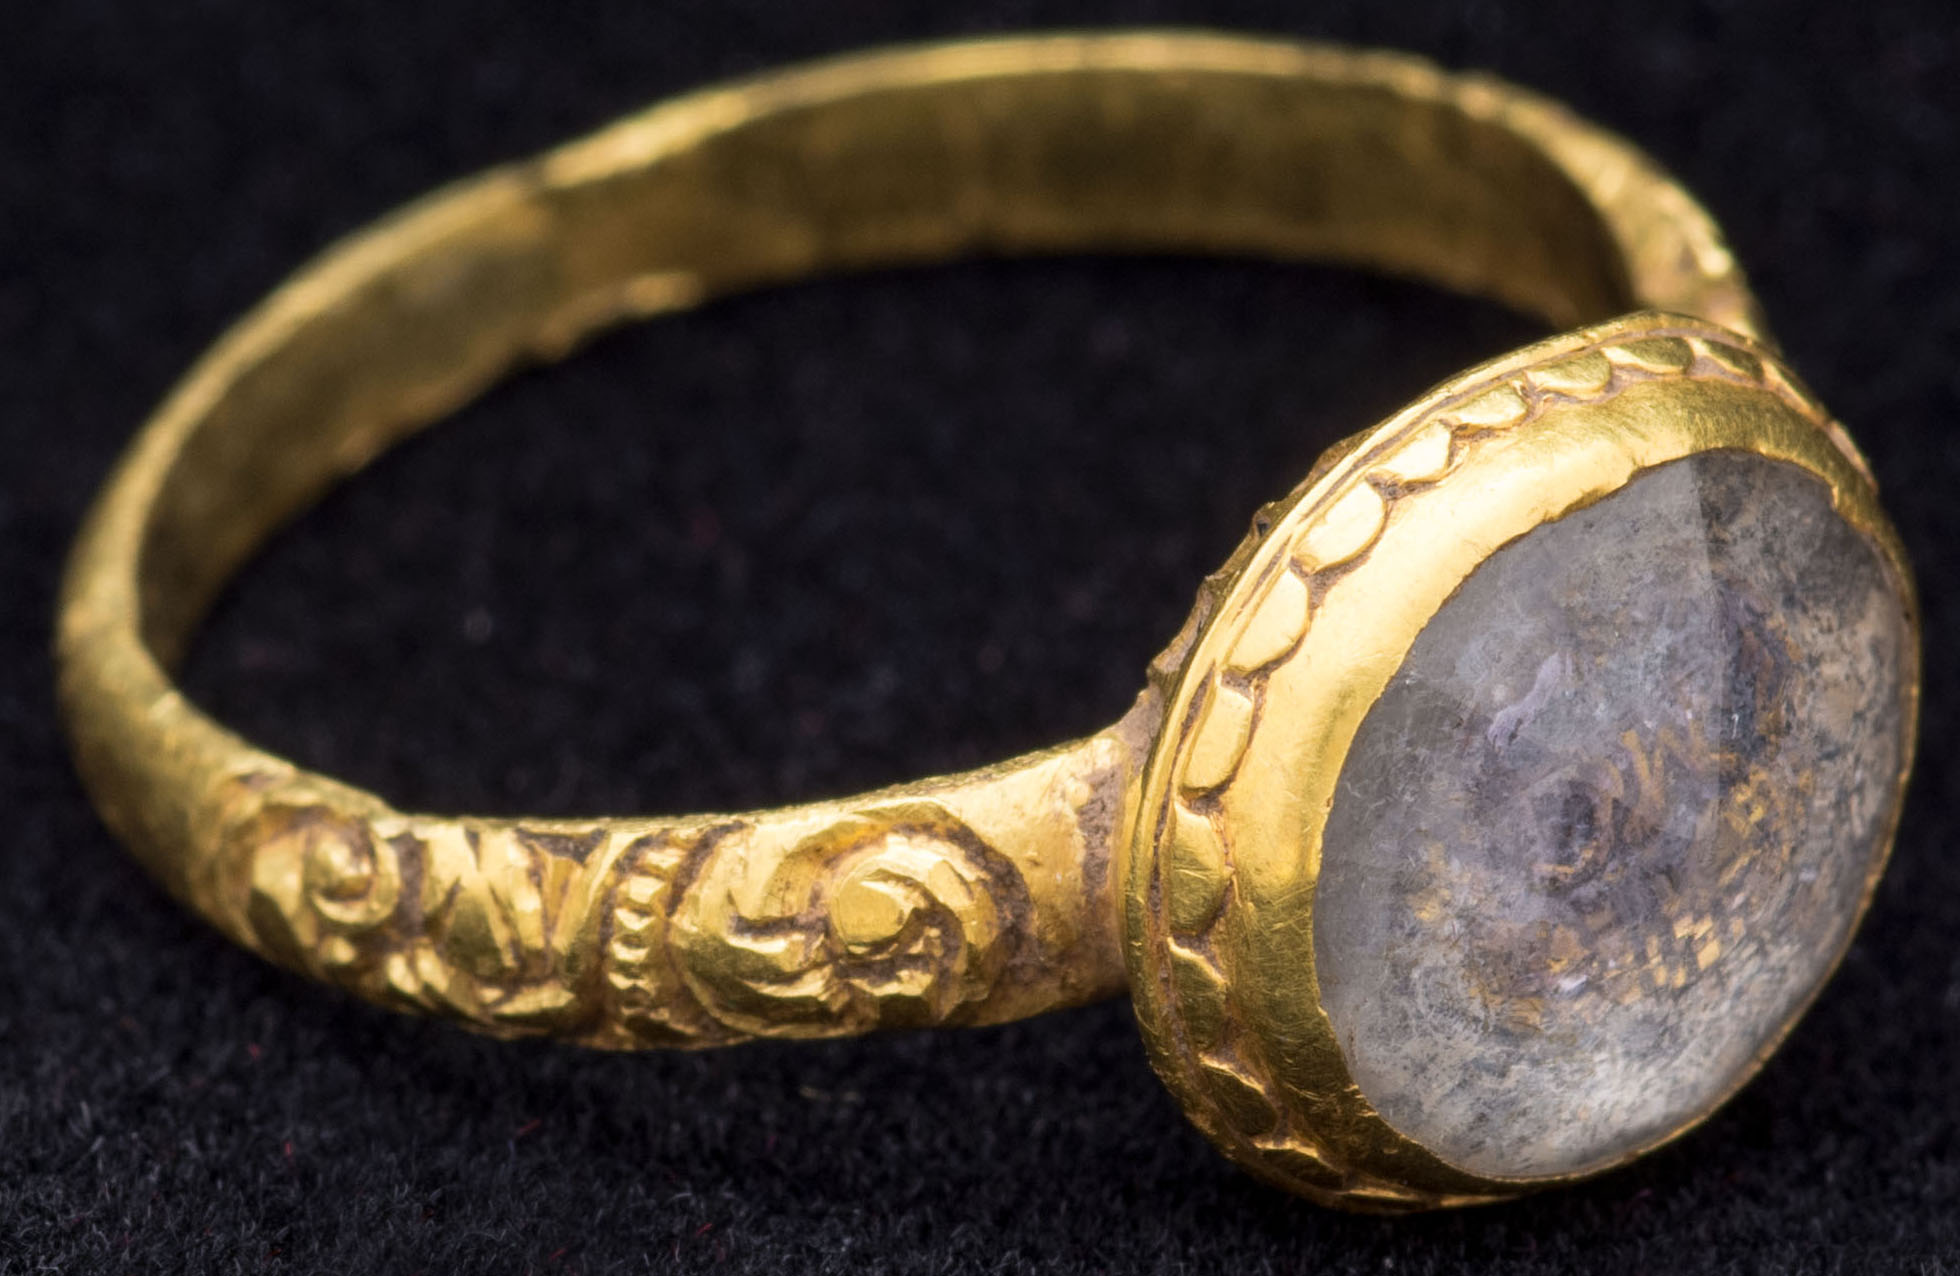 a photo of a gold ring with an opal in it